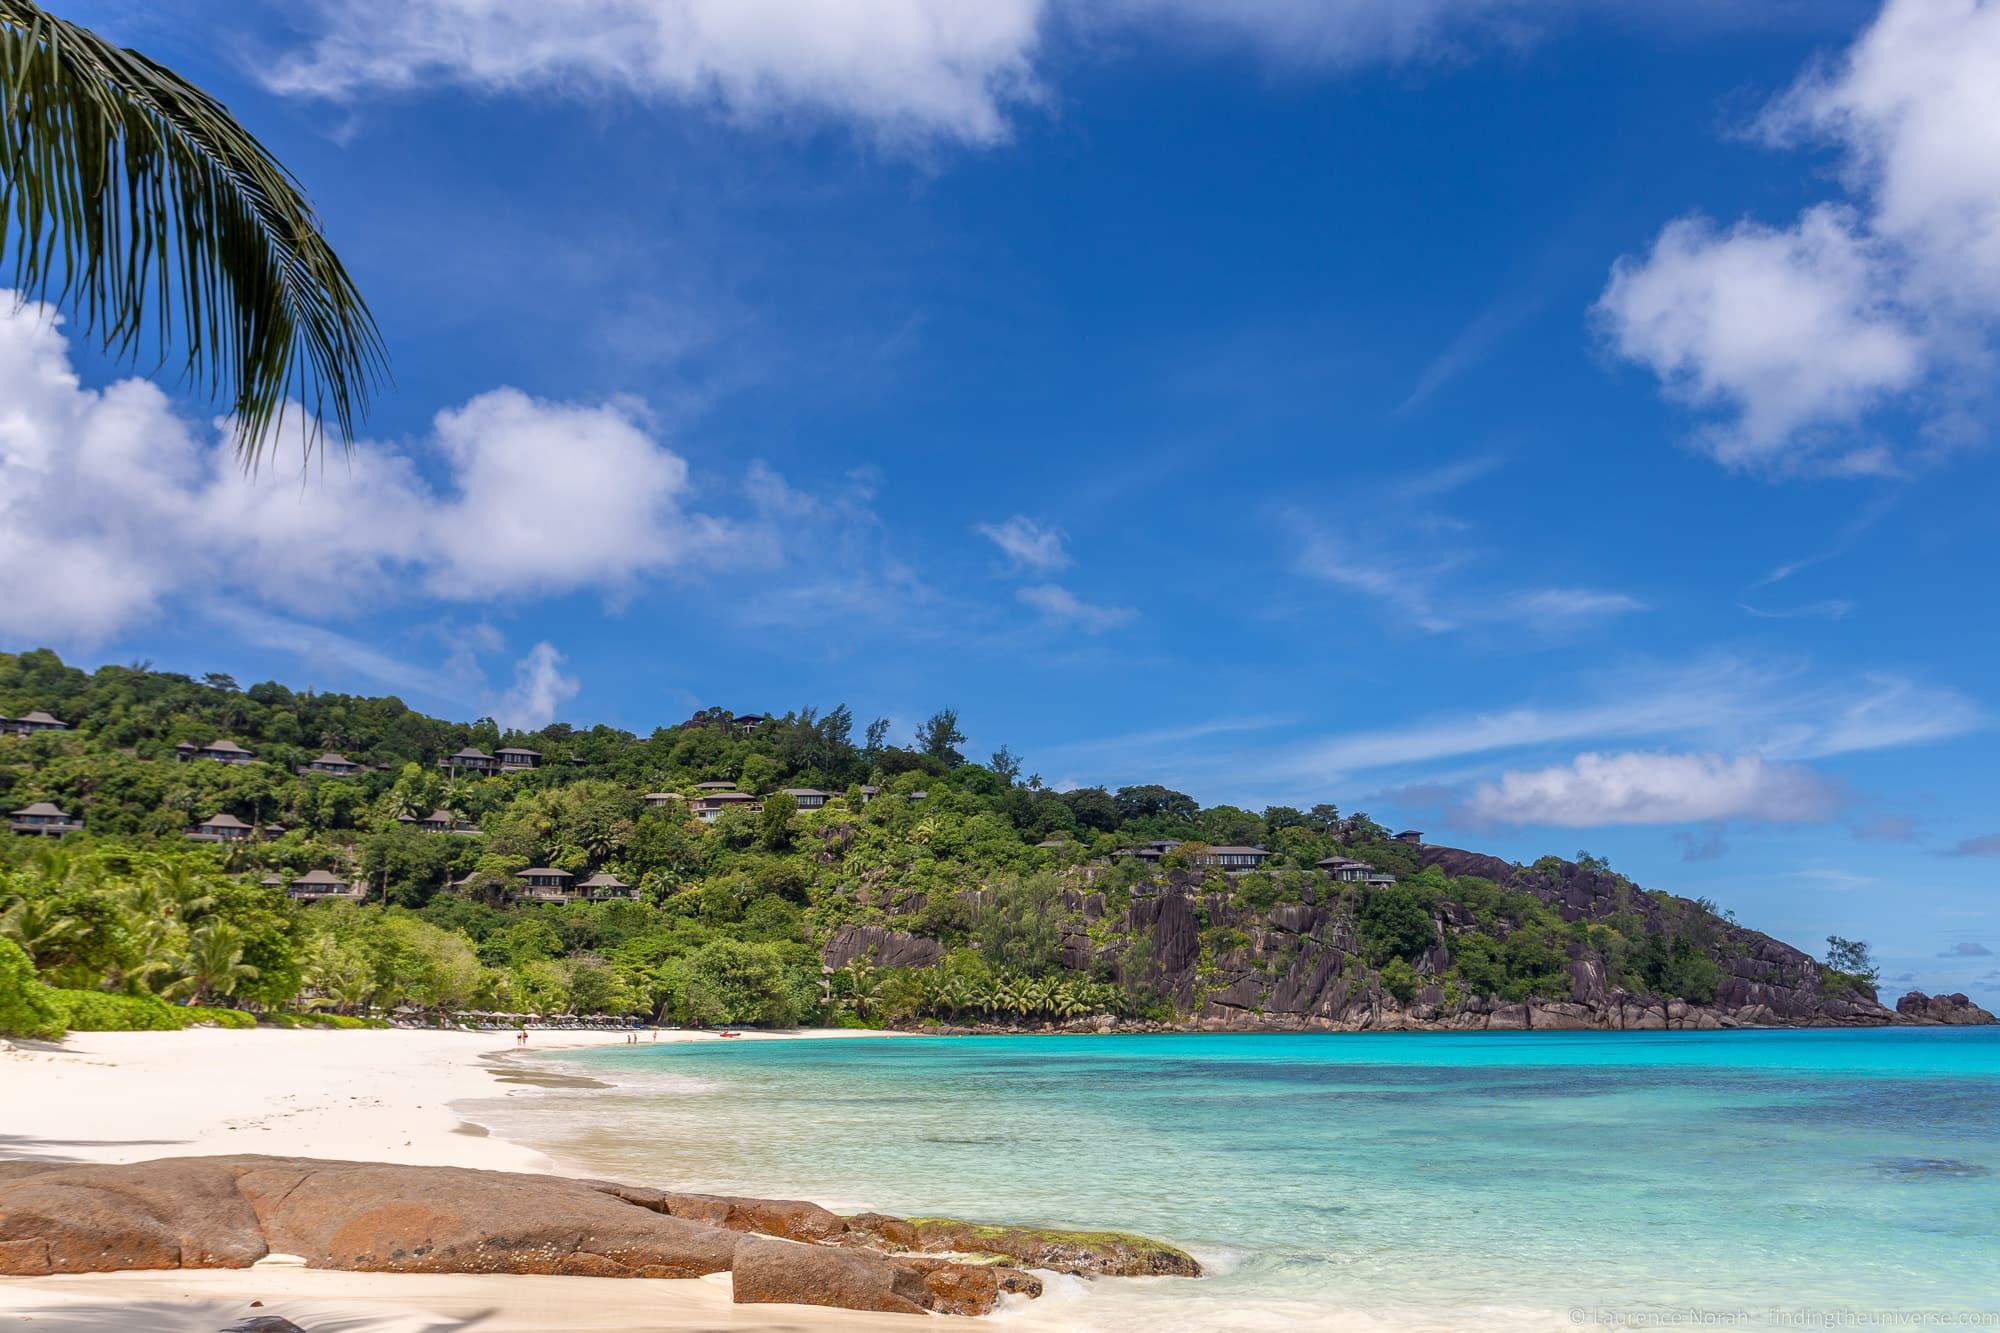 Best Beaches in the Seychelles - Petite Anse Mahé Seychelles